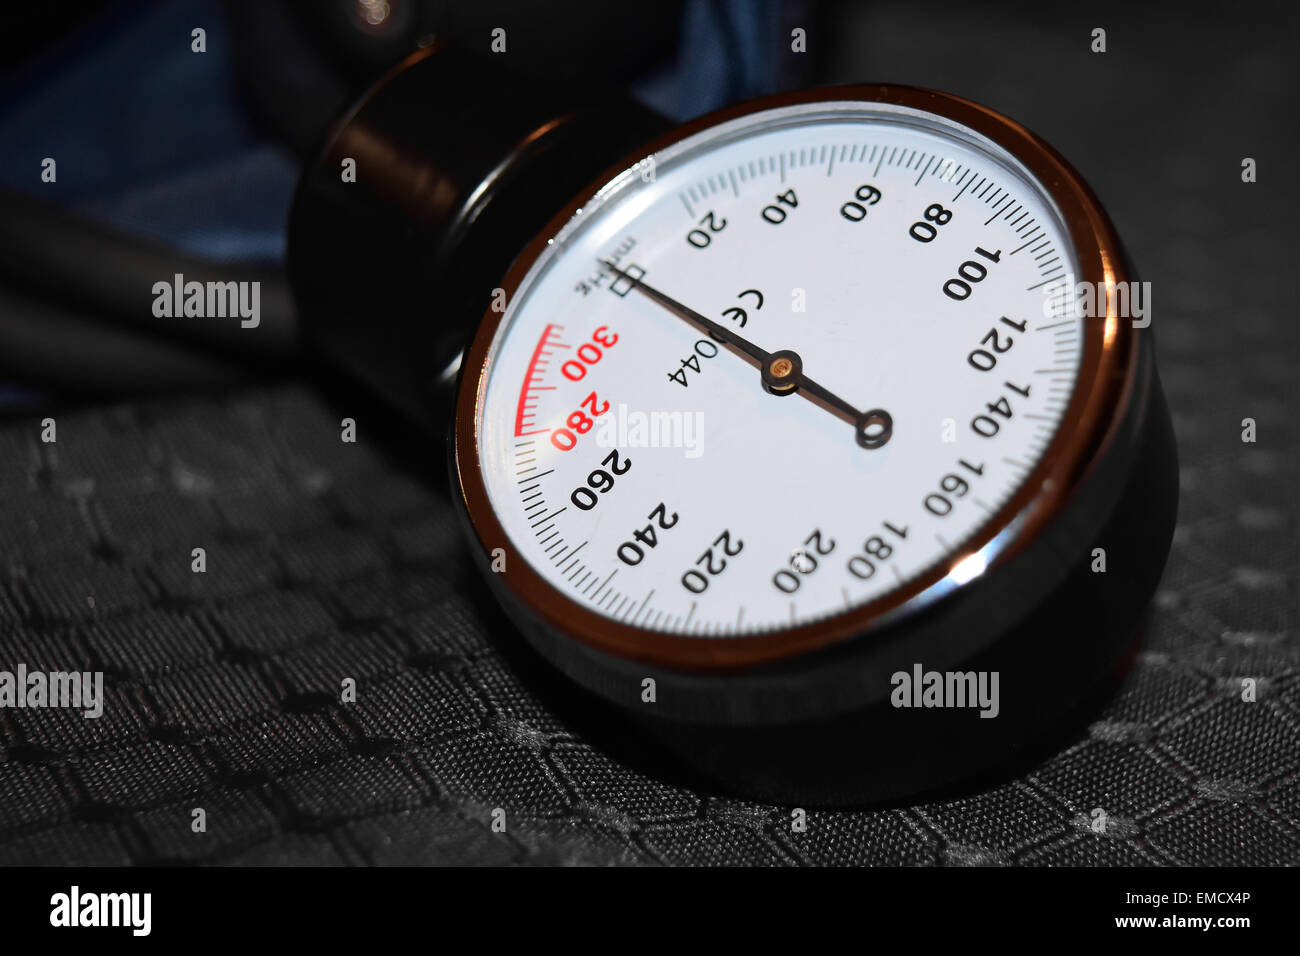 A blood pressure gauge on a blood pressure cuff. - Stock Image